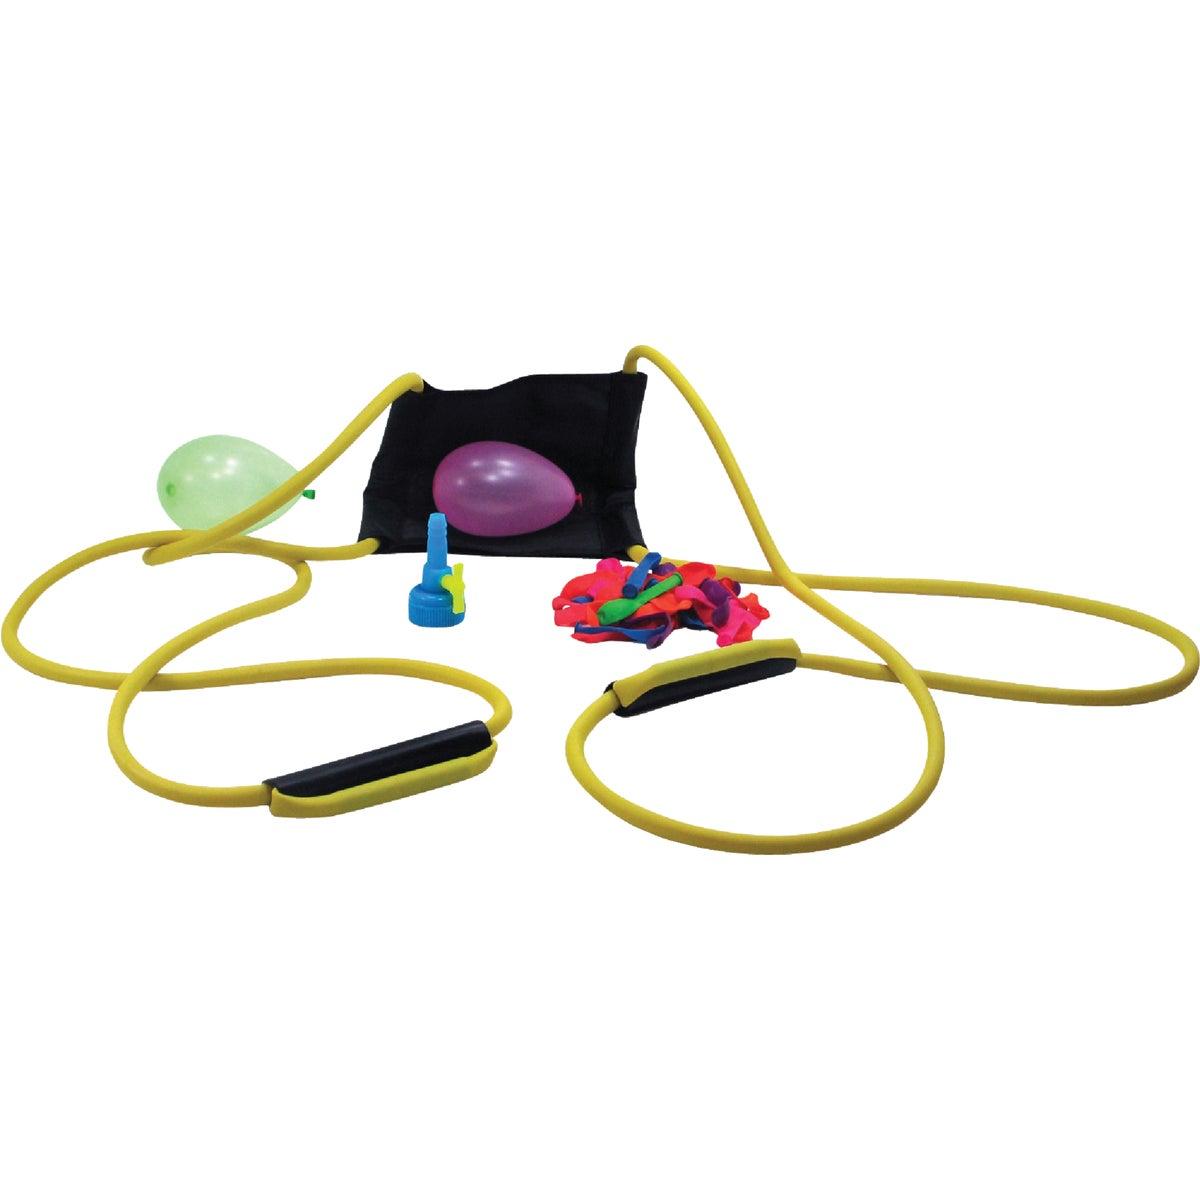 WATER BALLOON LAUNCHER - 80083 by Water Sports Llc